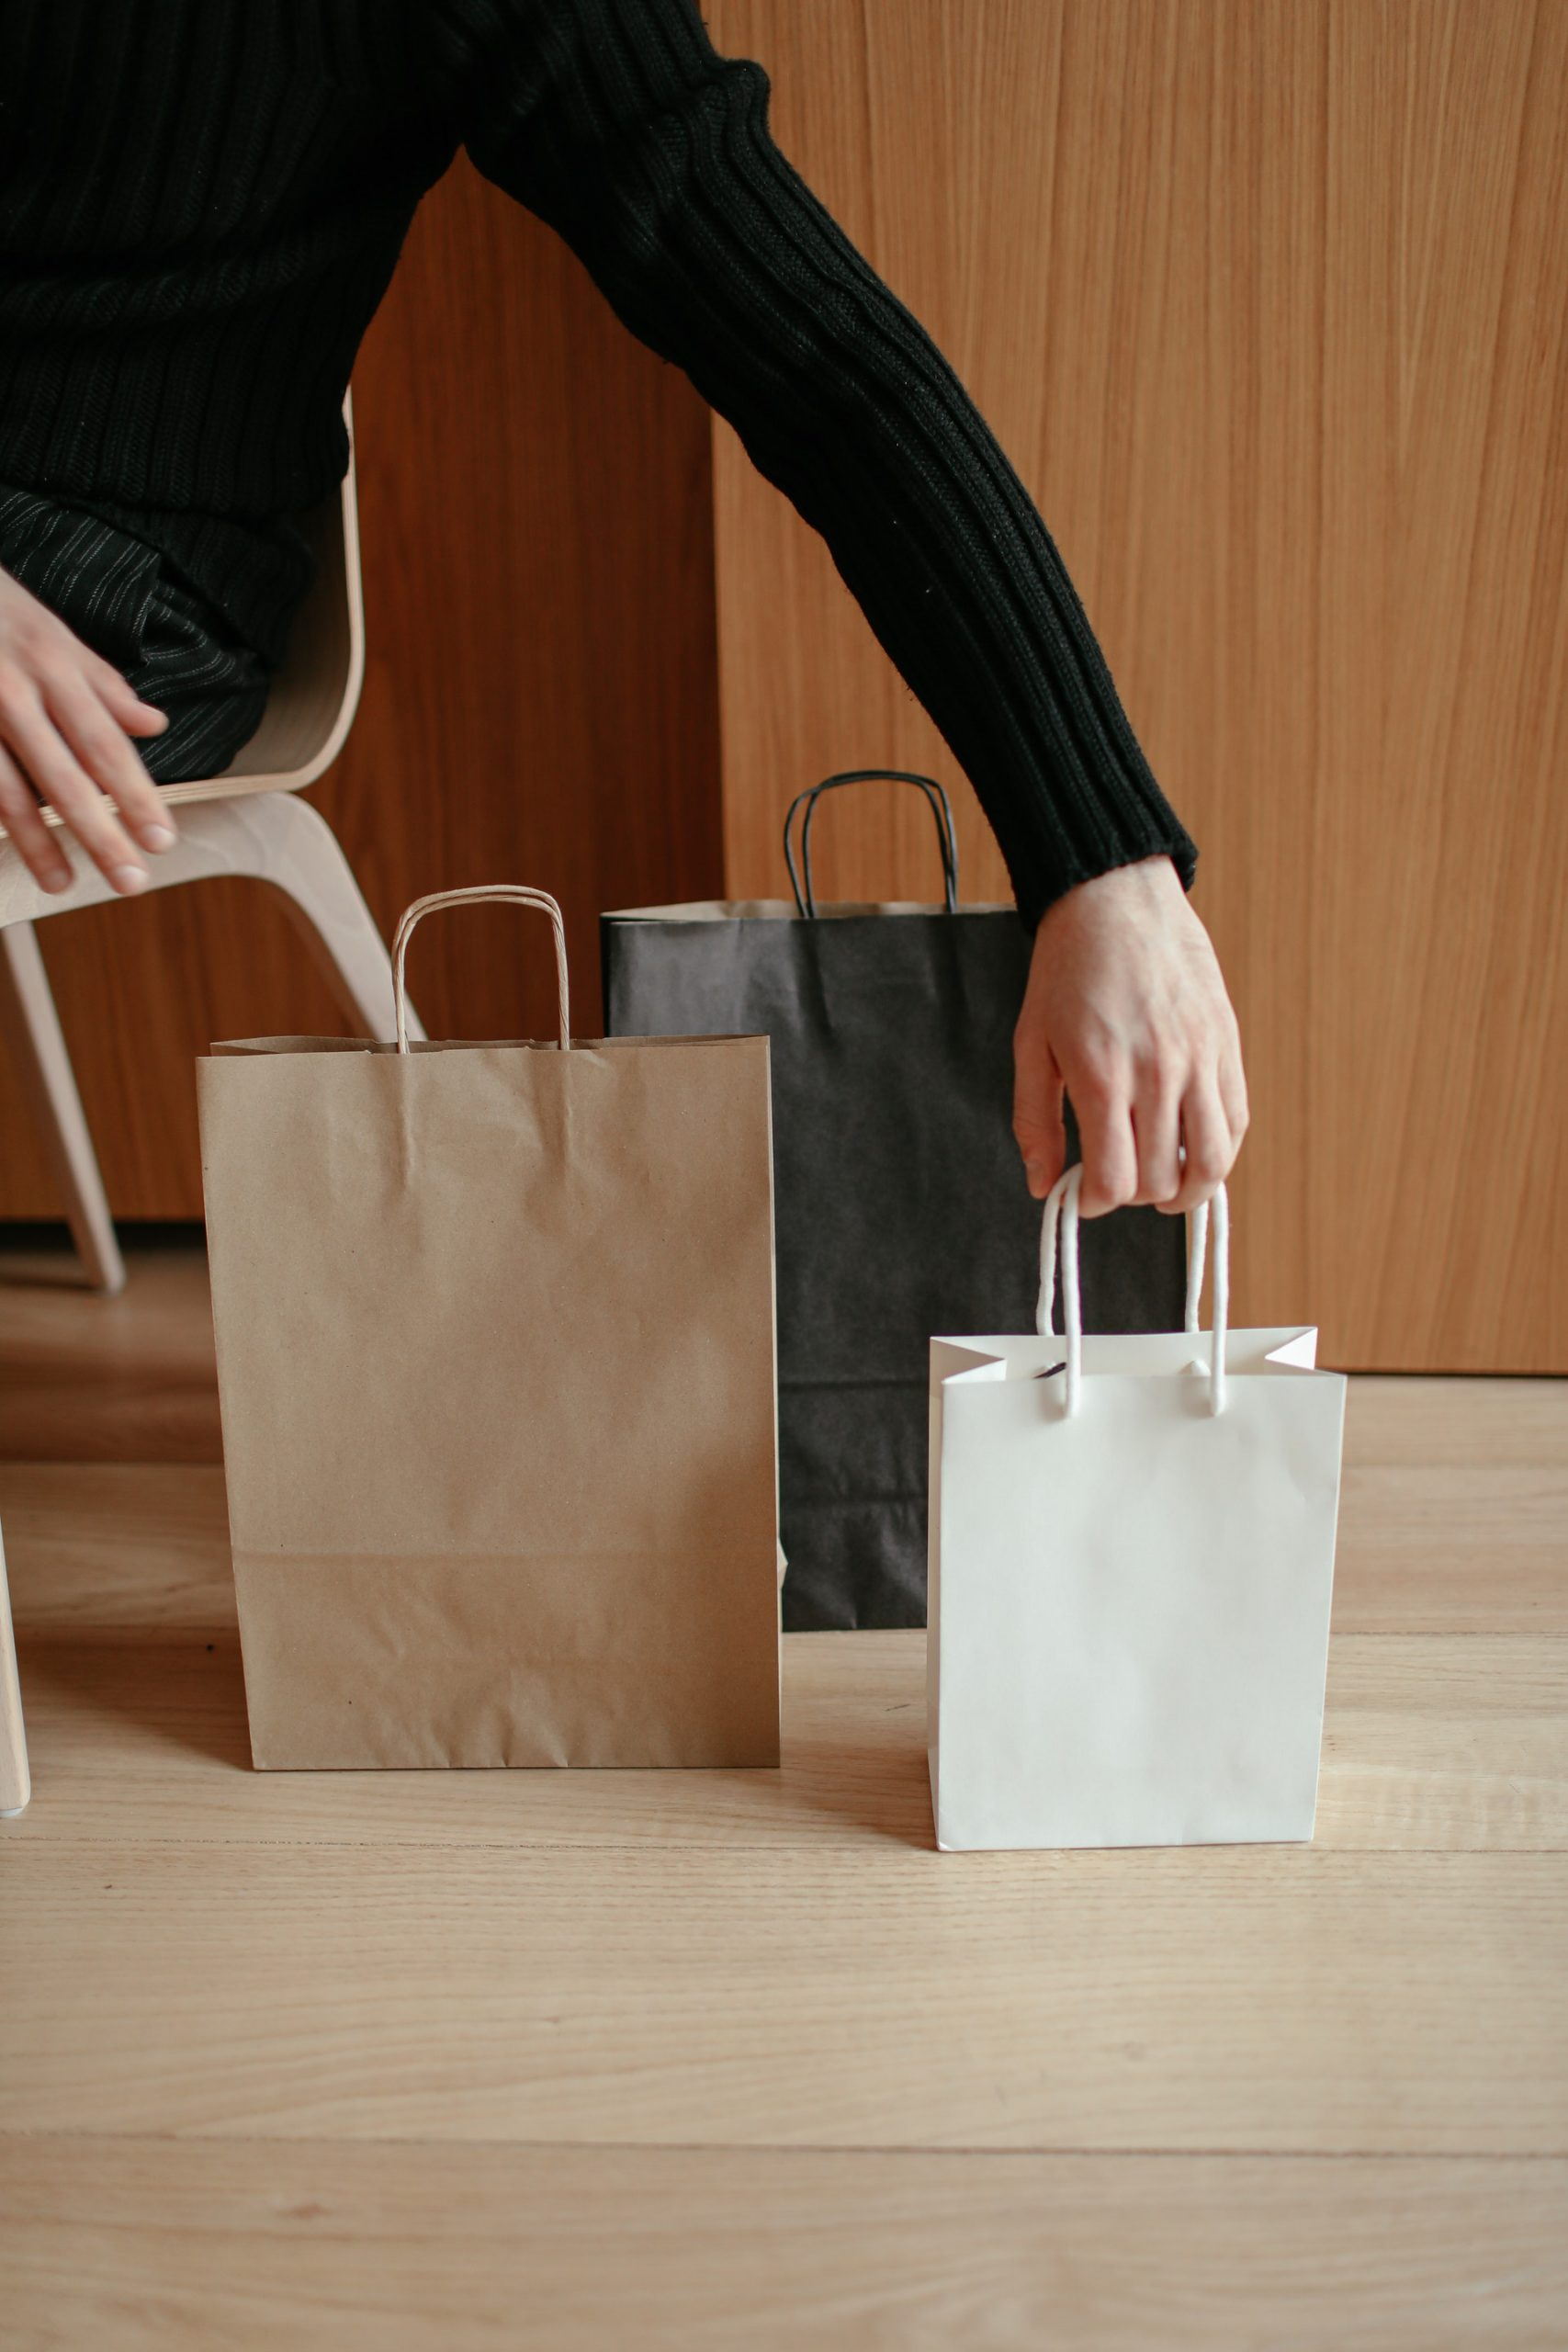 Minimum time & resource requirements for launching a loyalty program